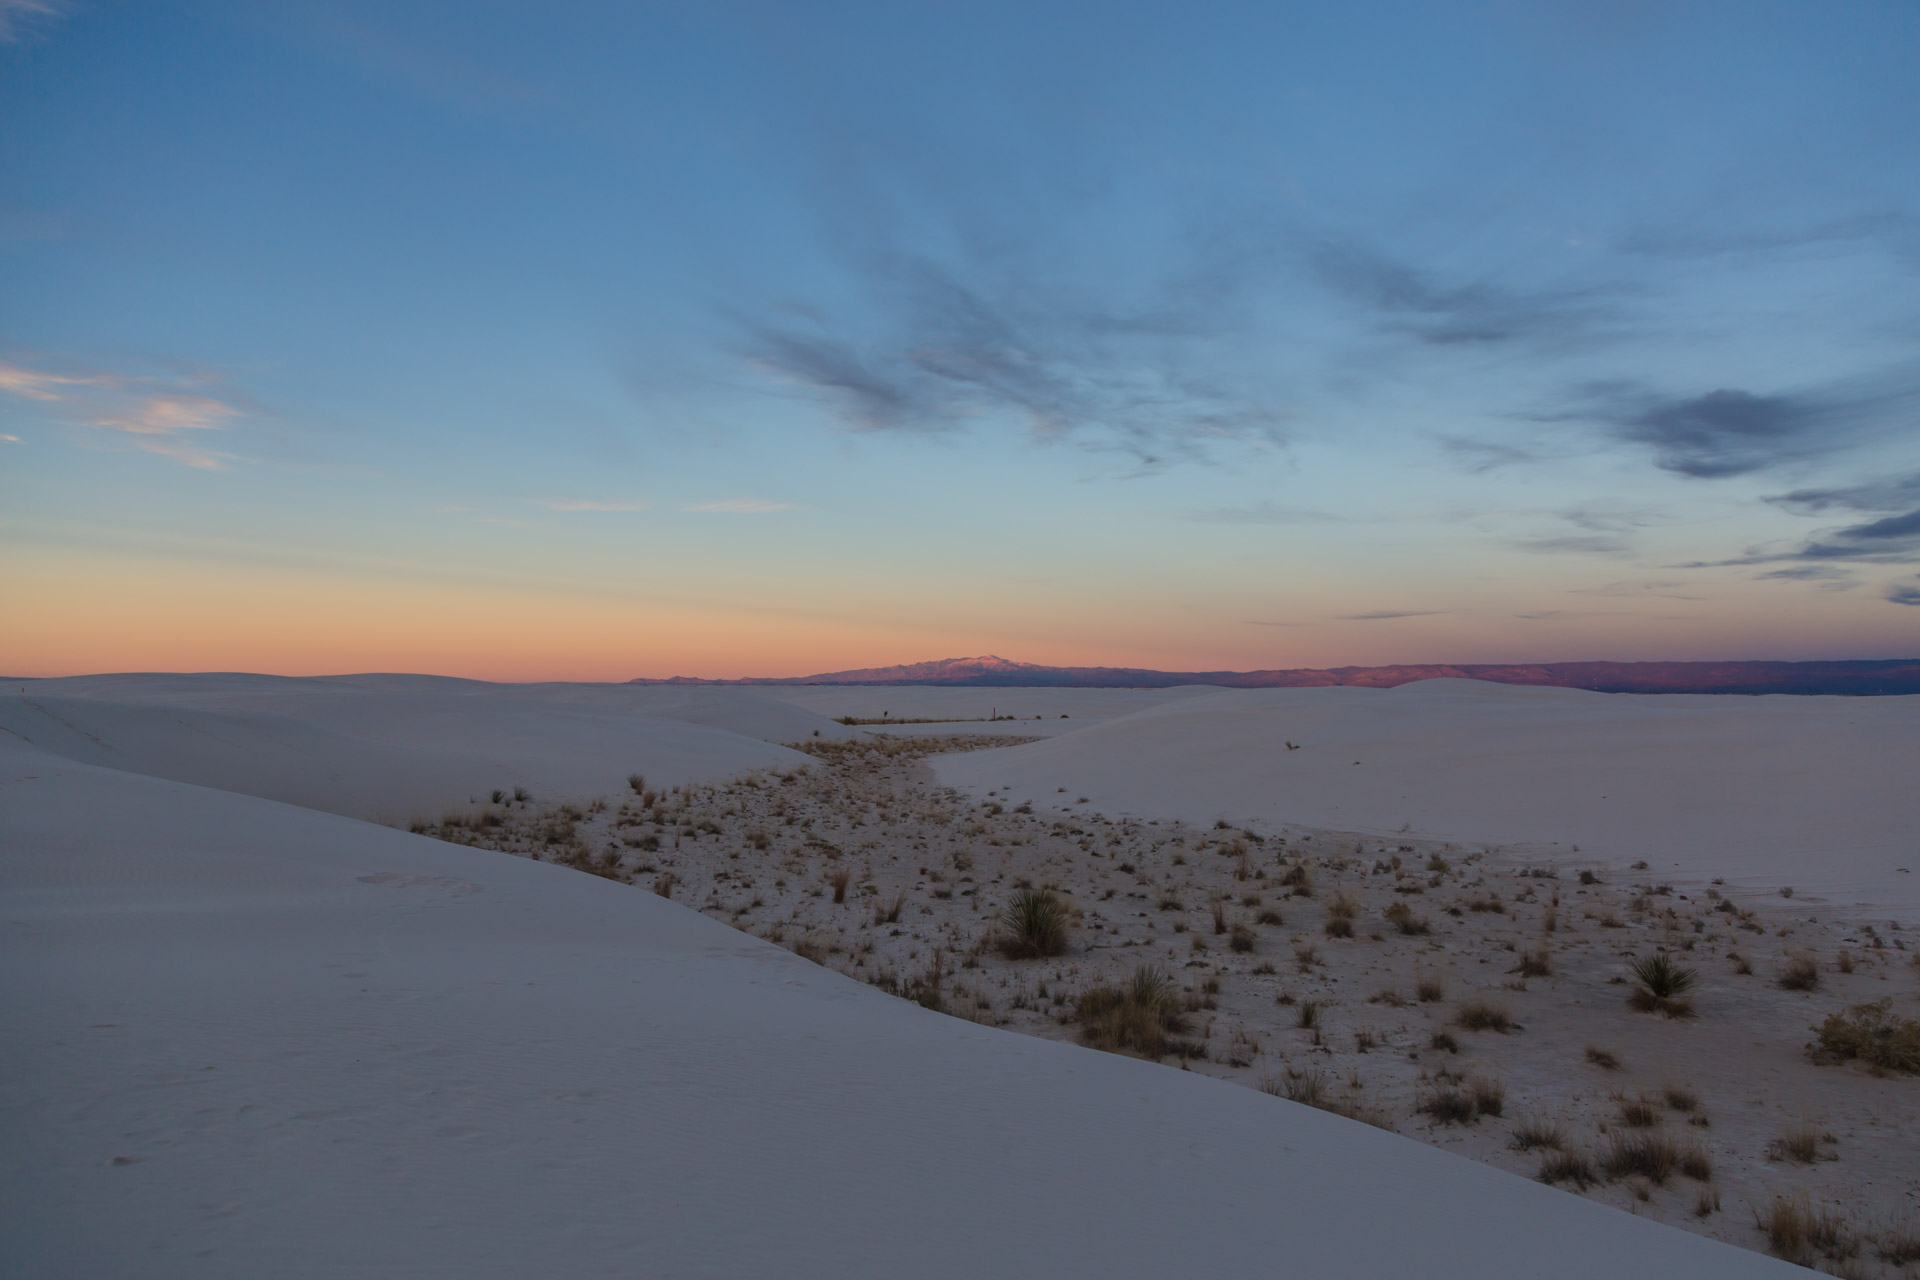 In A Sunset At White Sands (view 1)